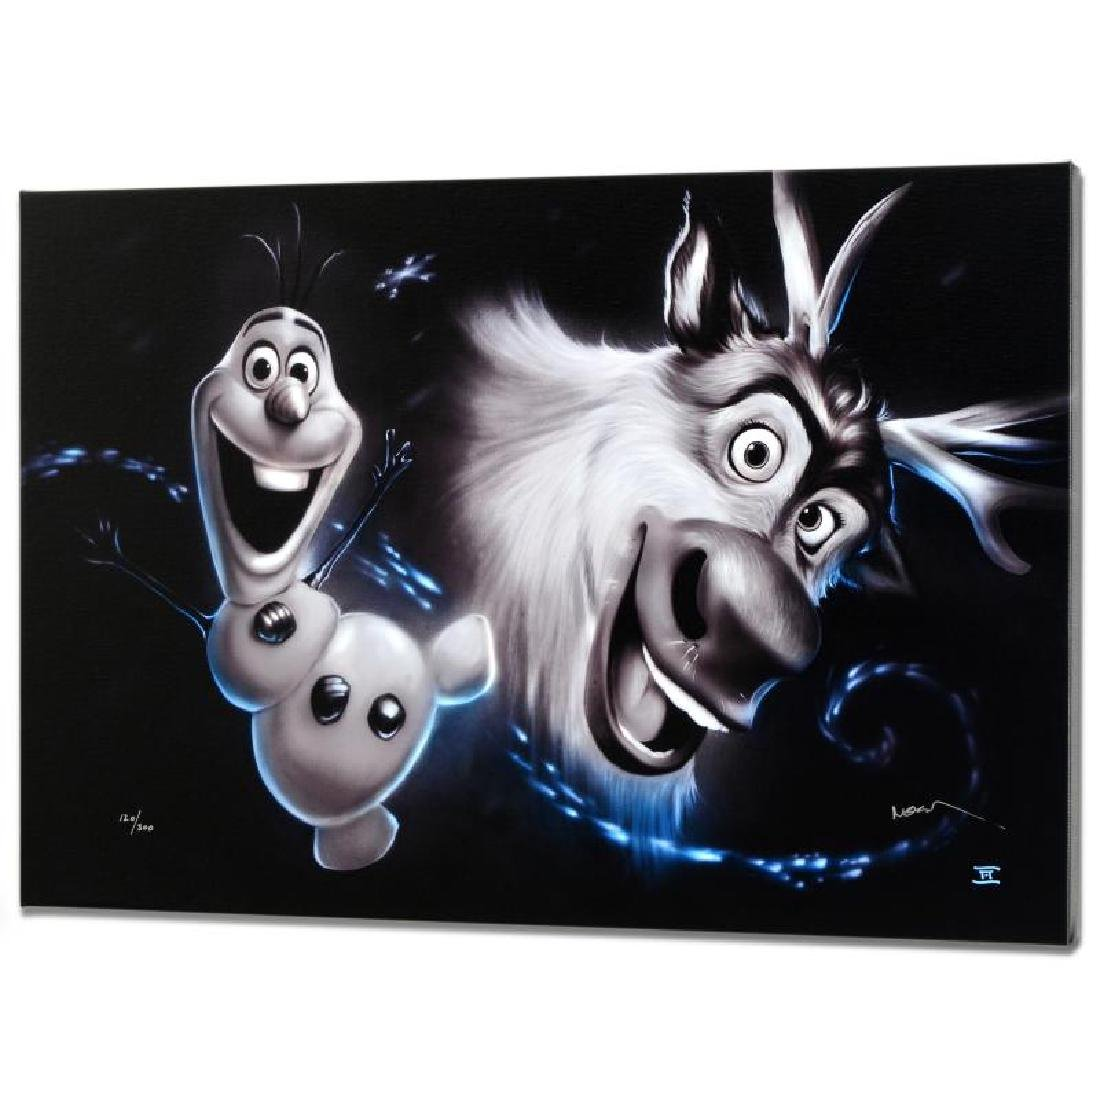 """Olaf & Sven"" Disney Limited Edition Giclee on Canvas"